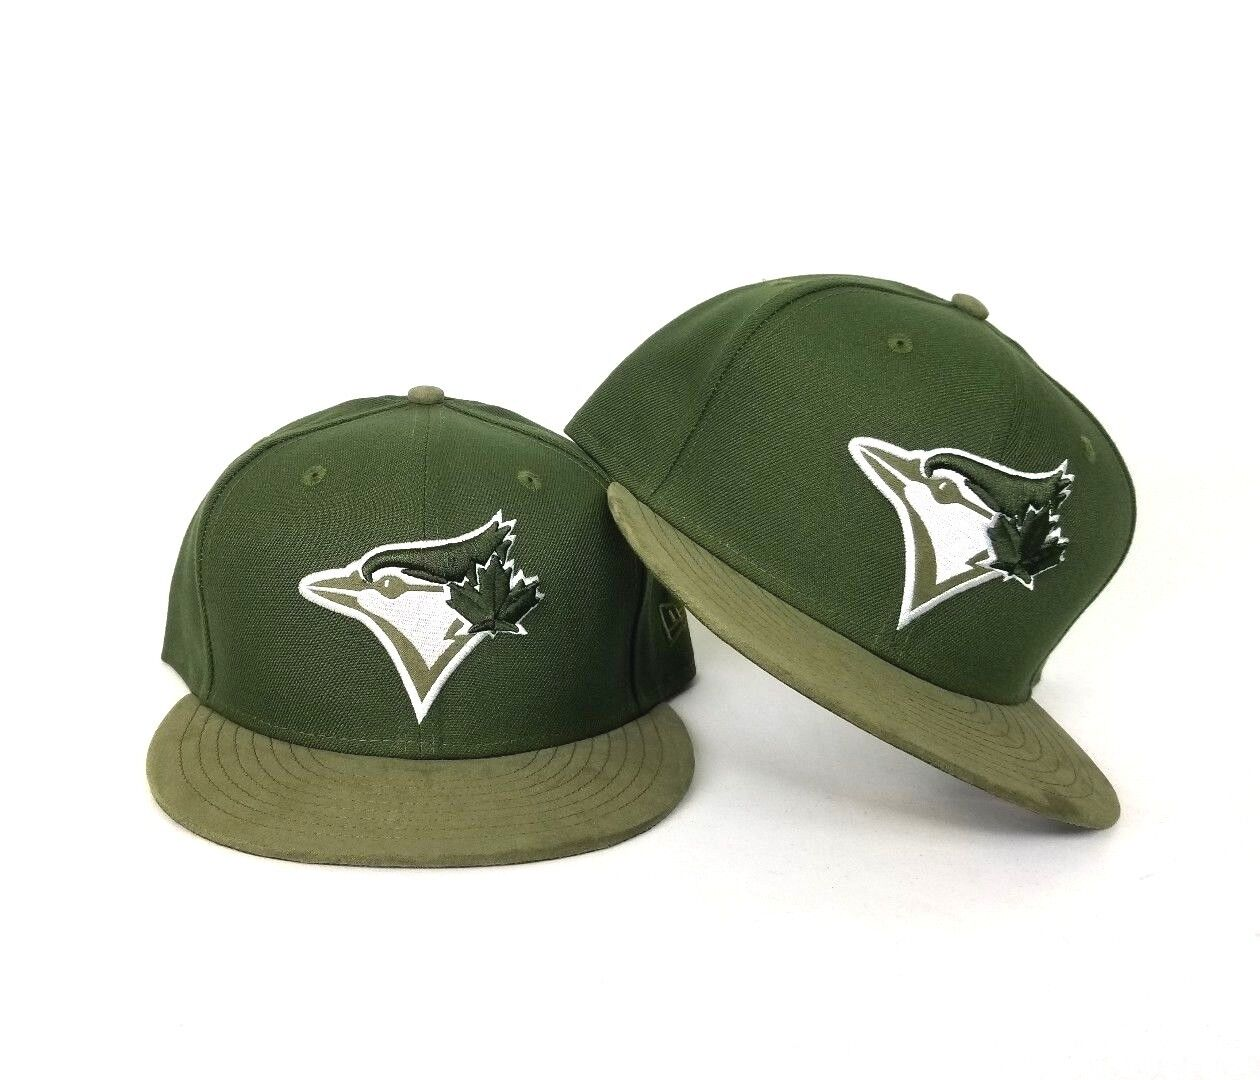 428028342 Details about New Era Olive Green Toronto Blue Jays 59Fifty Fitted hat  Jordan 12 Chris Paul